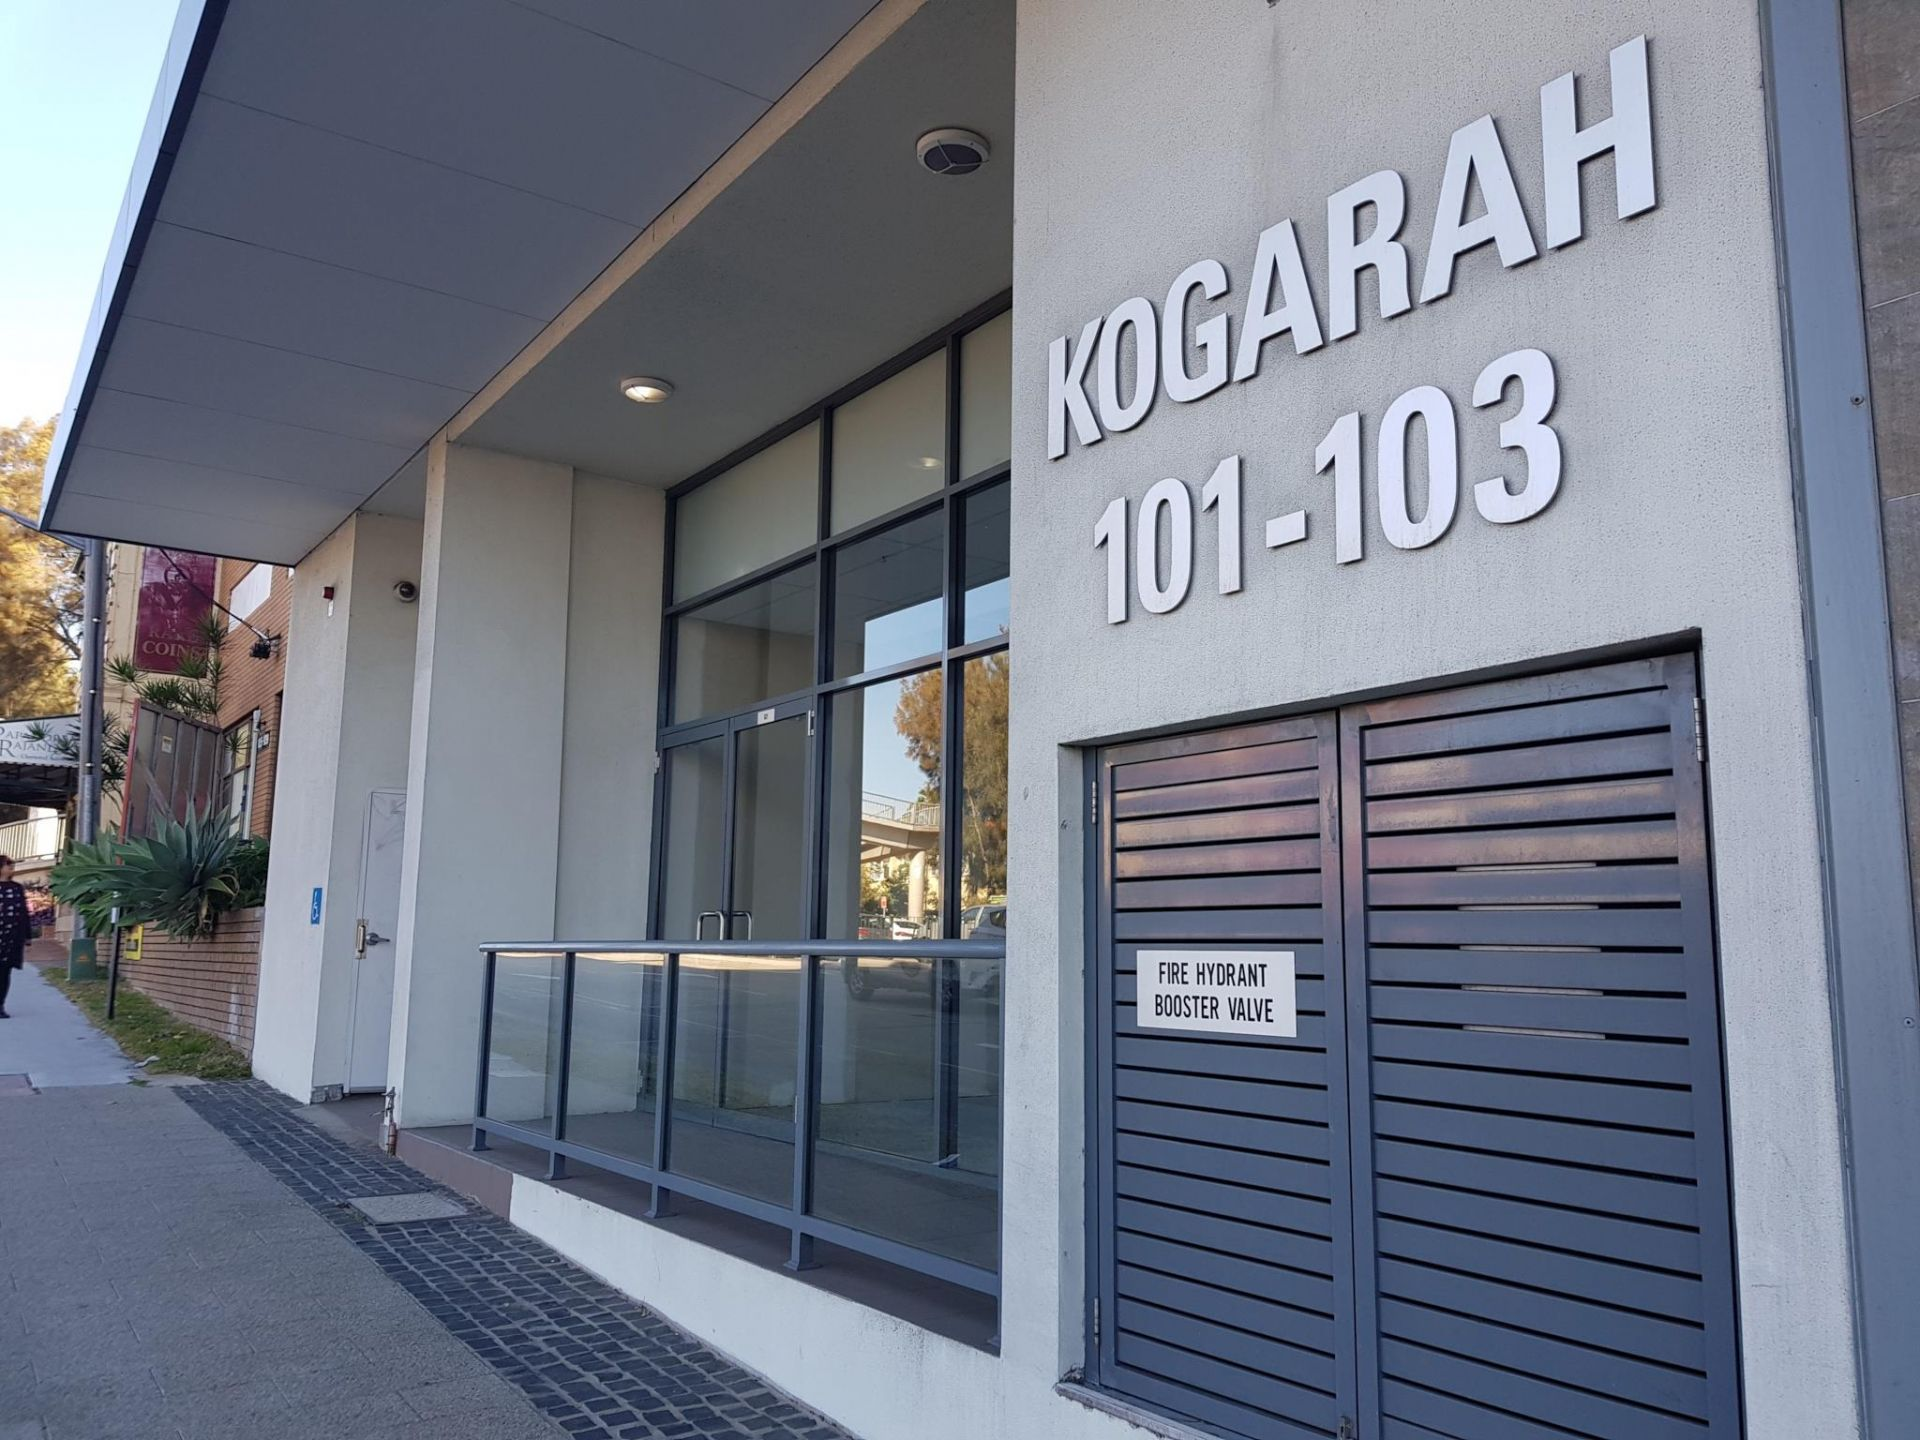 Great value retail in Kogarah CBD